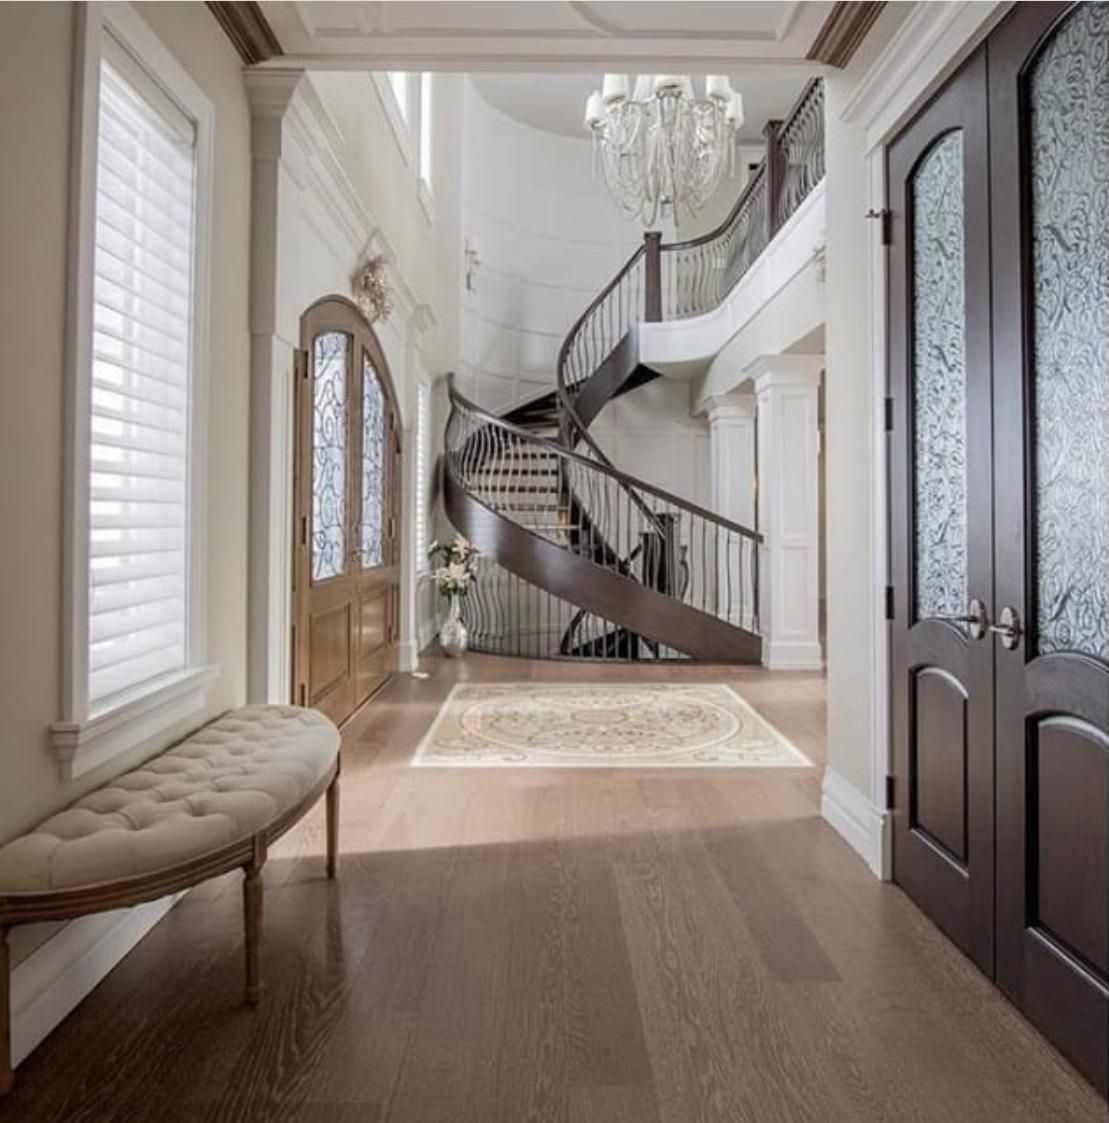 A perfect contemporary entry way. What a maginificient winding staircase! High ceilings, crystal chandelier and hardwood floors. The achictectural trim on the white walls contrasted with dark wood doors is stunning!   SunShine Floor Supplies can help you find the perfect floors for your entry way.   SunShine Floor Supplies, Inc. 147 Selleck Street #6616, Stamford, CT 06902